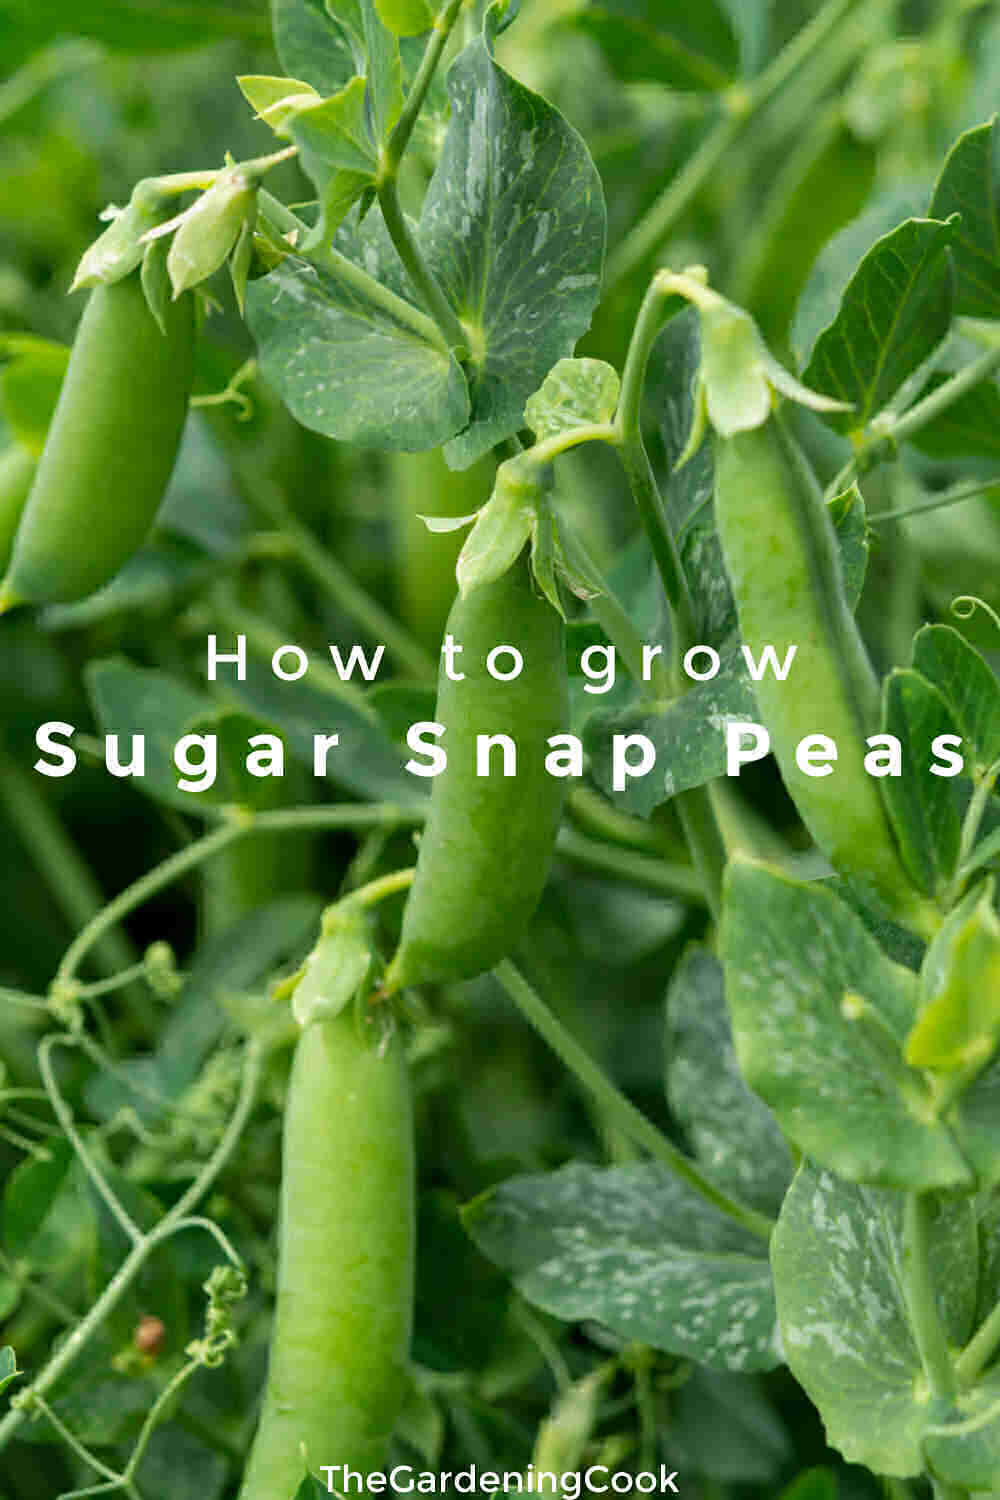 Snap pea plants with words How to Grow Sugar Snap Peas.